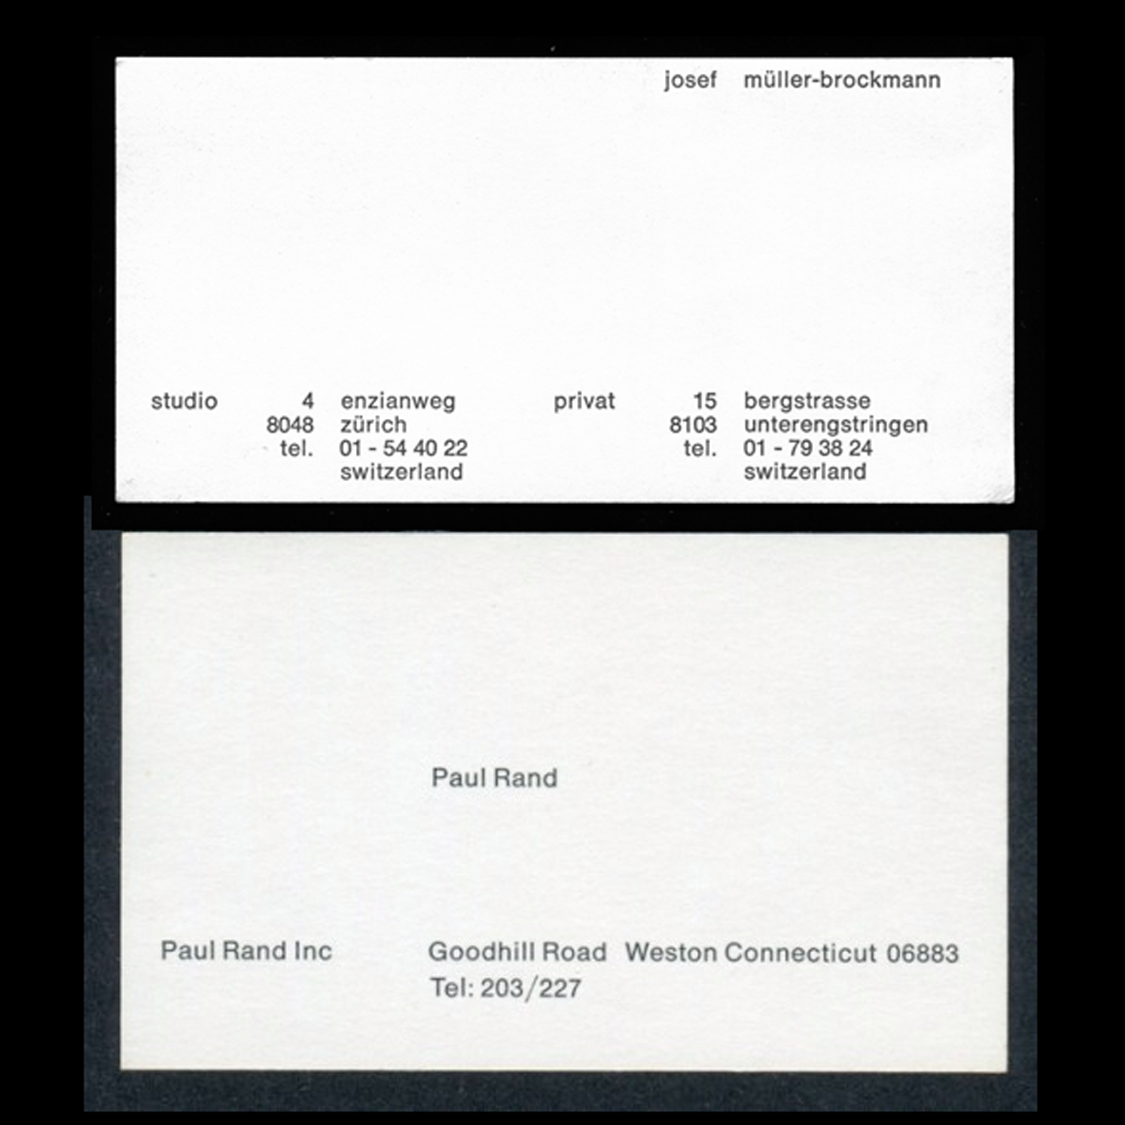 Joseph Mller Brockmann Vs Paul Rand Biz Cards Your Business Cards